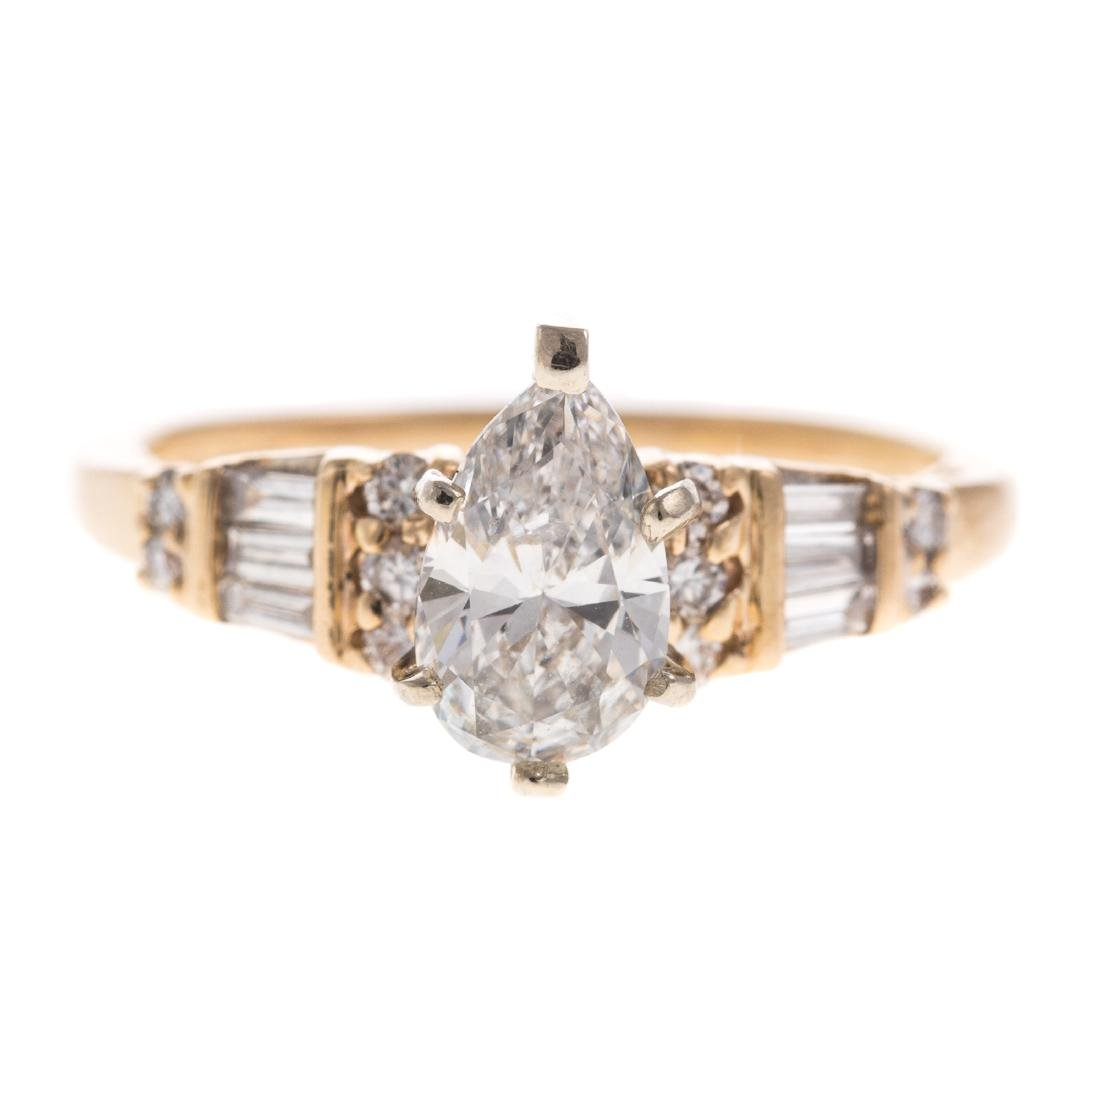 A Ladies Pear Shaped Diamond Ring in 14K